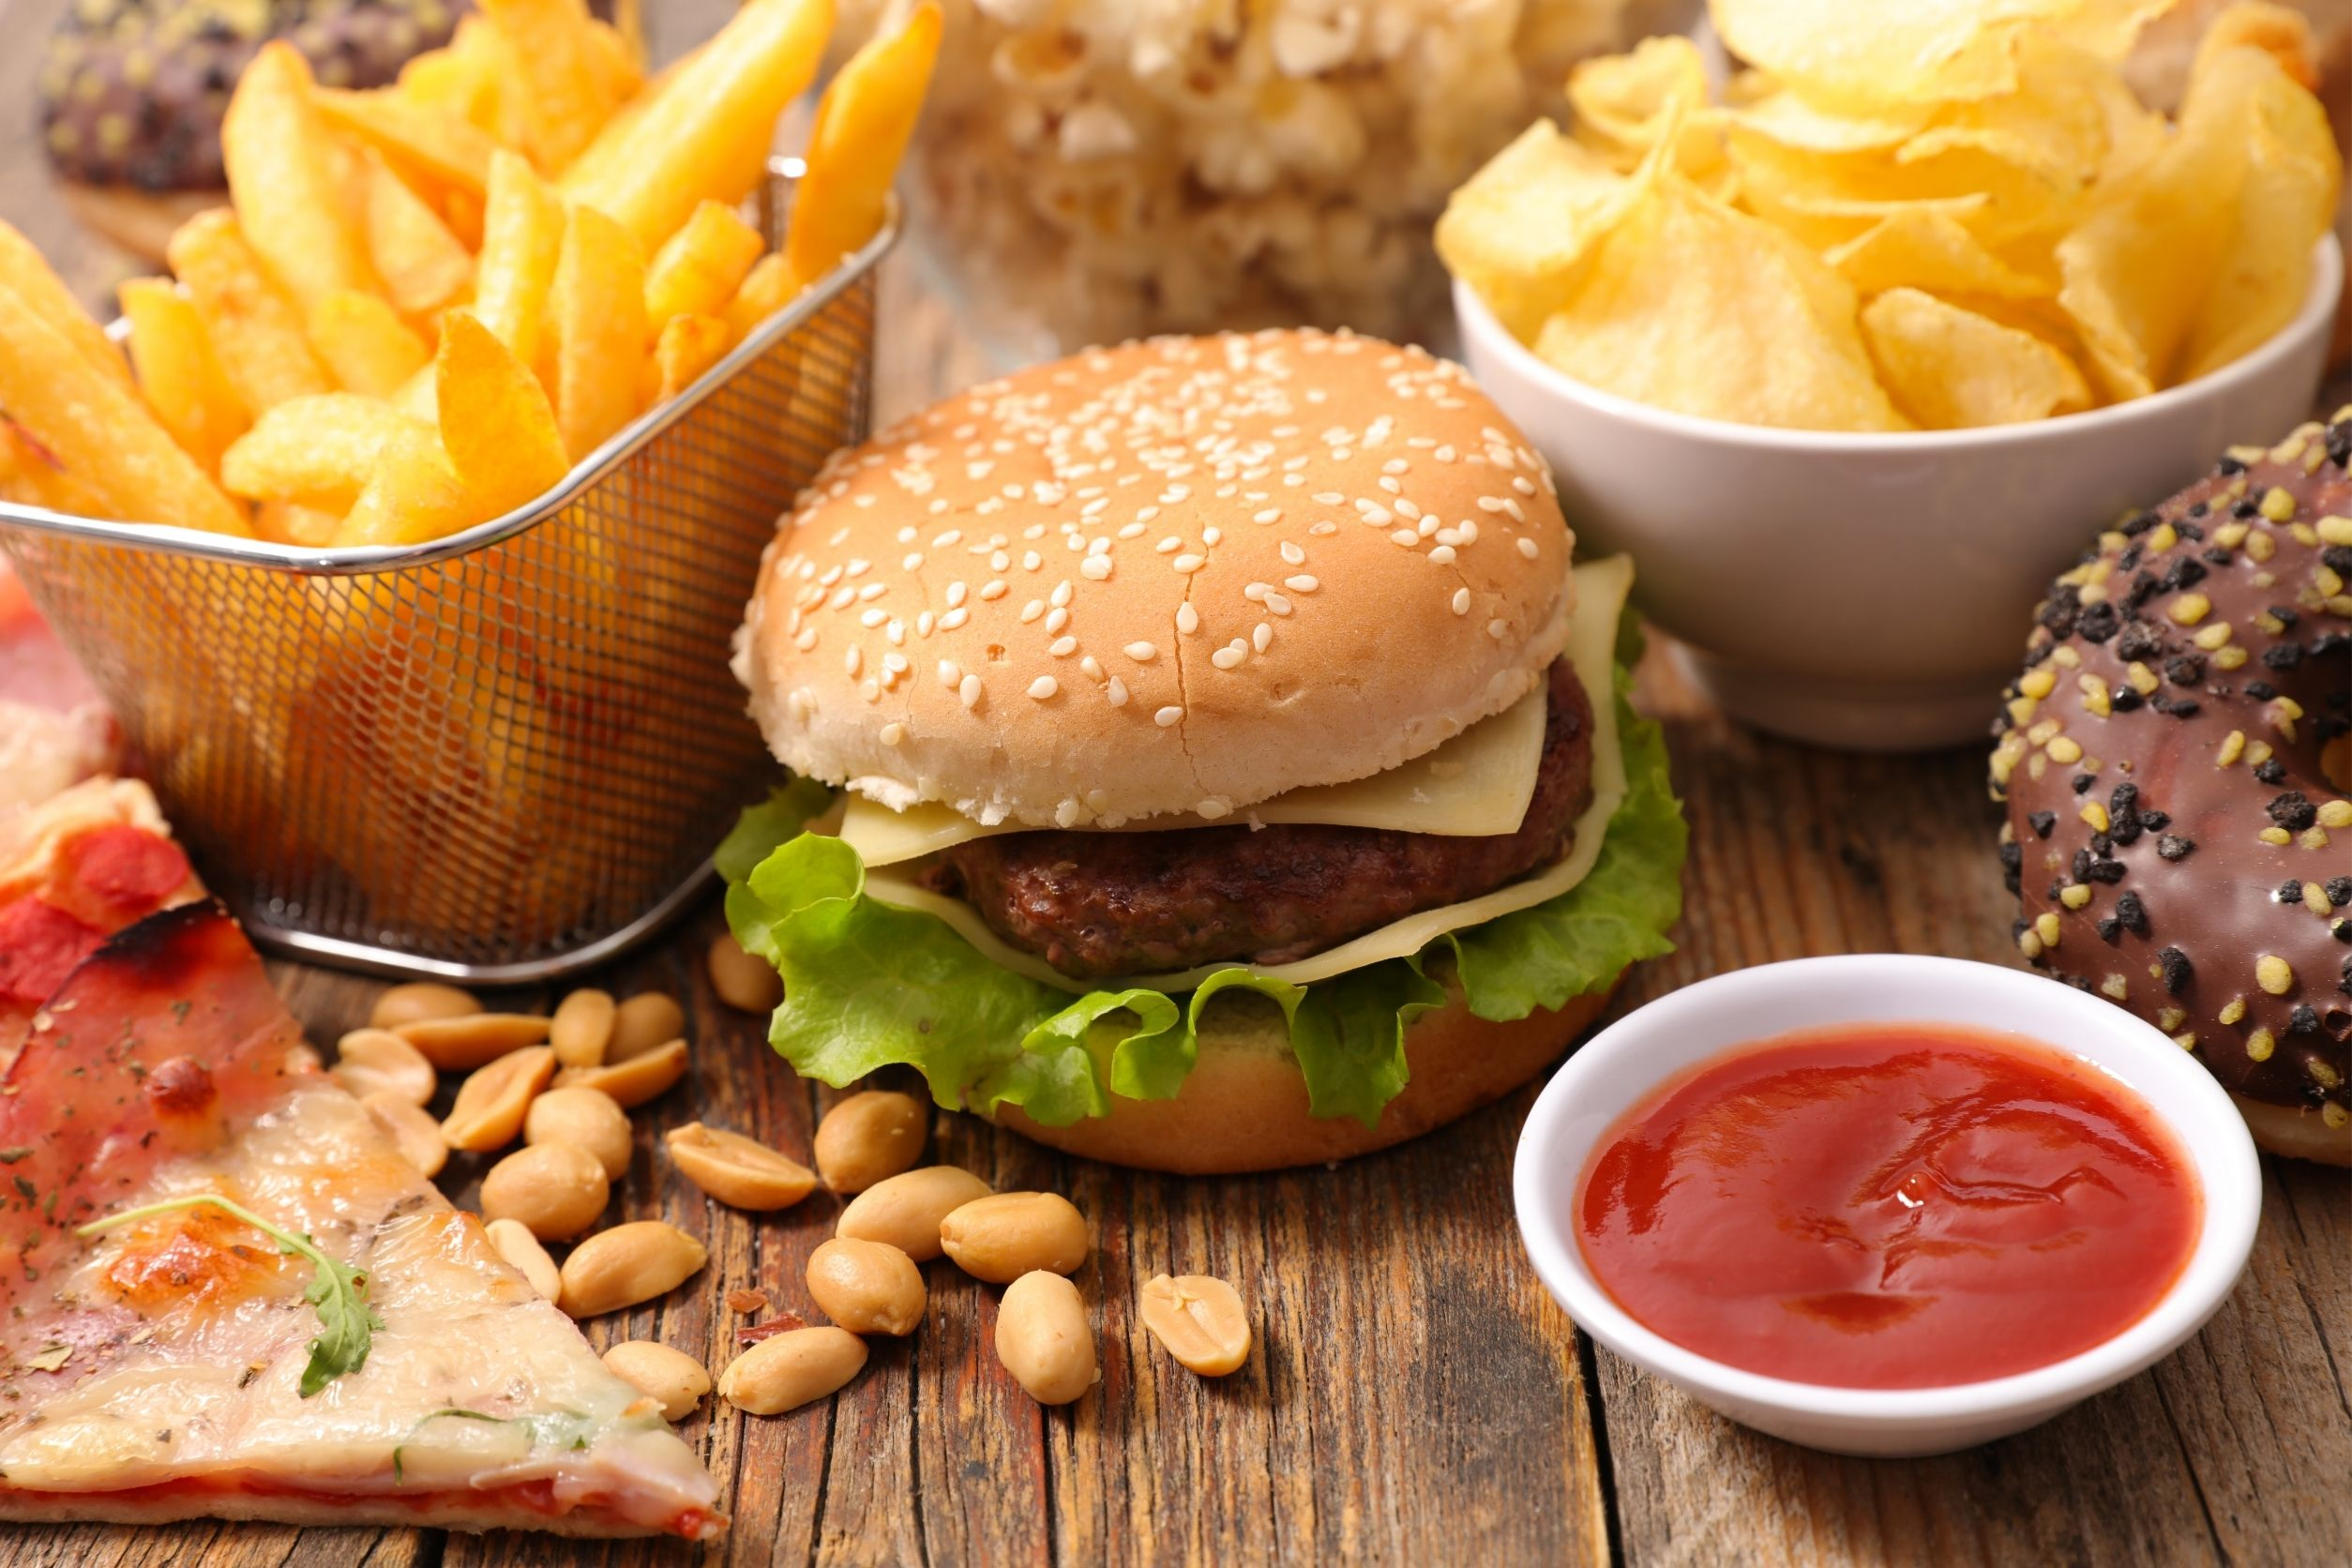 fast food like burgers, pizza, fries, and chips are bad for skincare